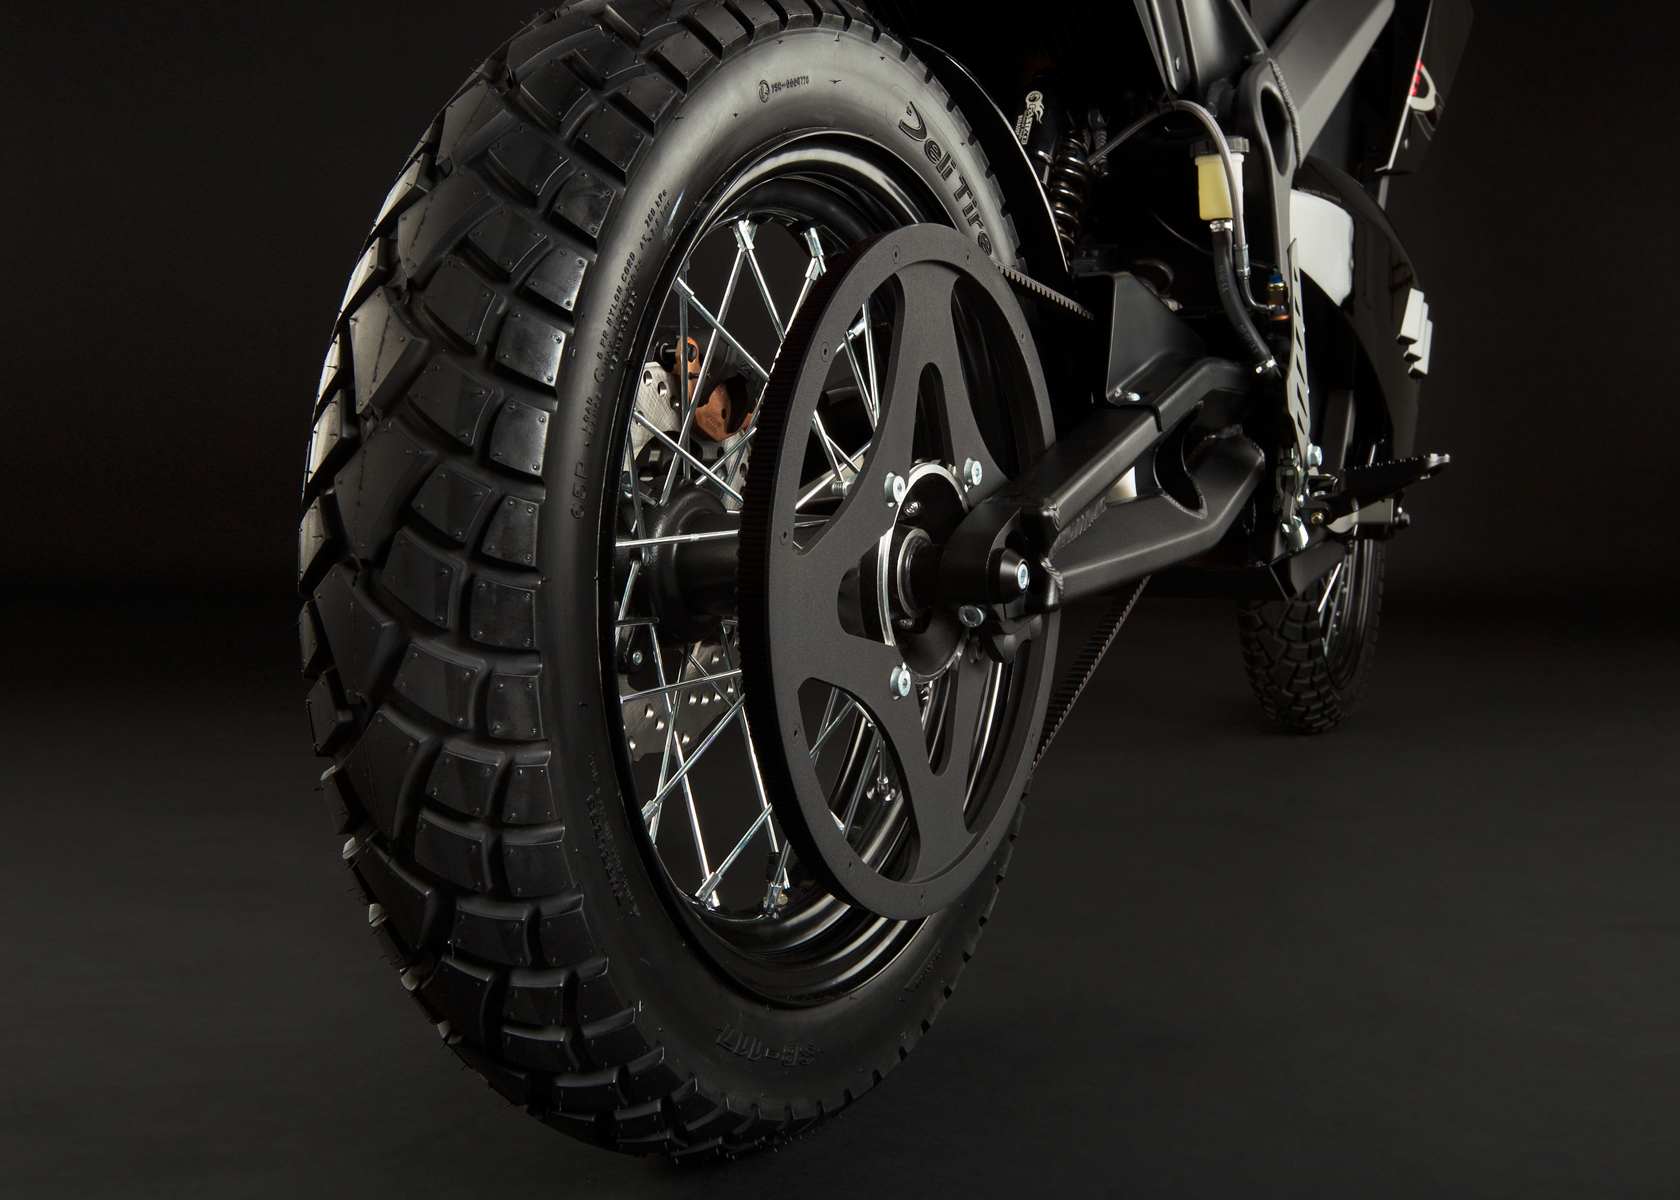 2012 Zero DS Electric Motorcycle: Drivetrain / Chain / Sprocket